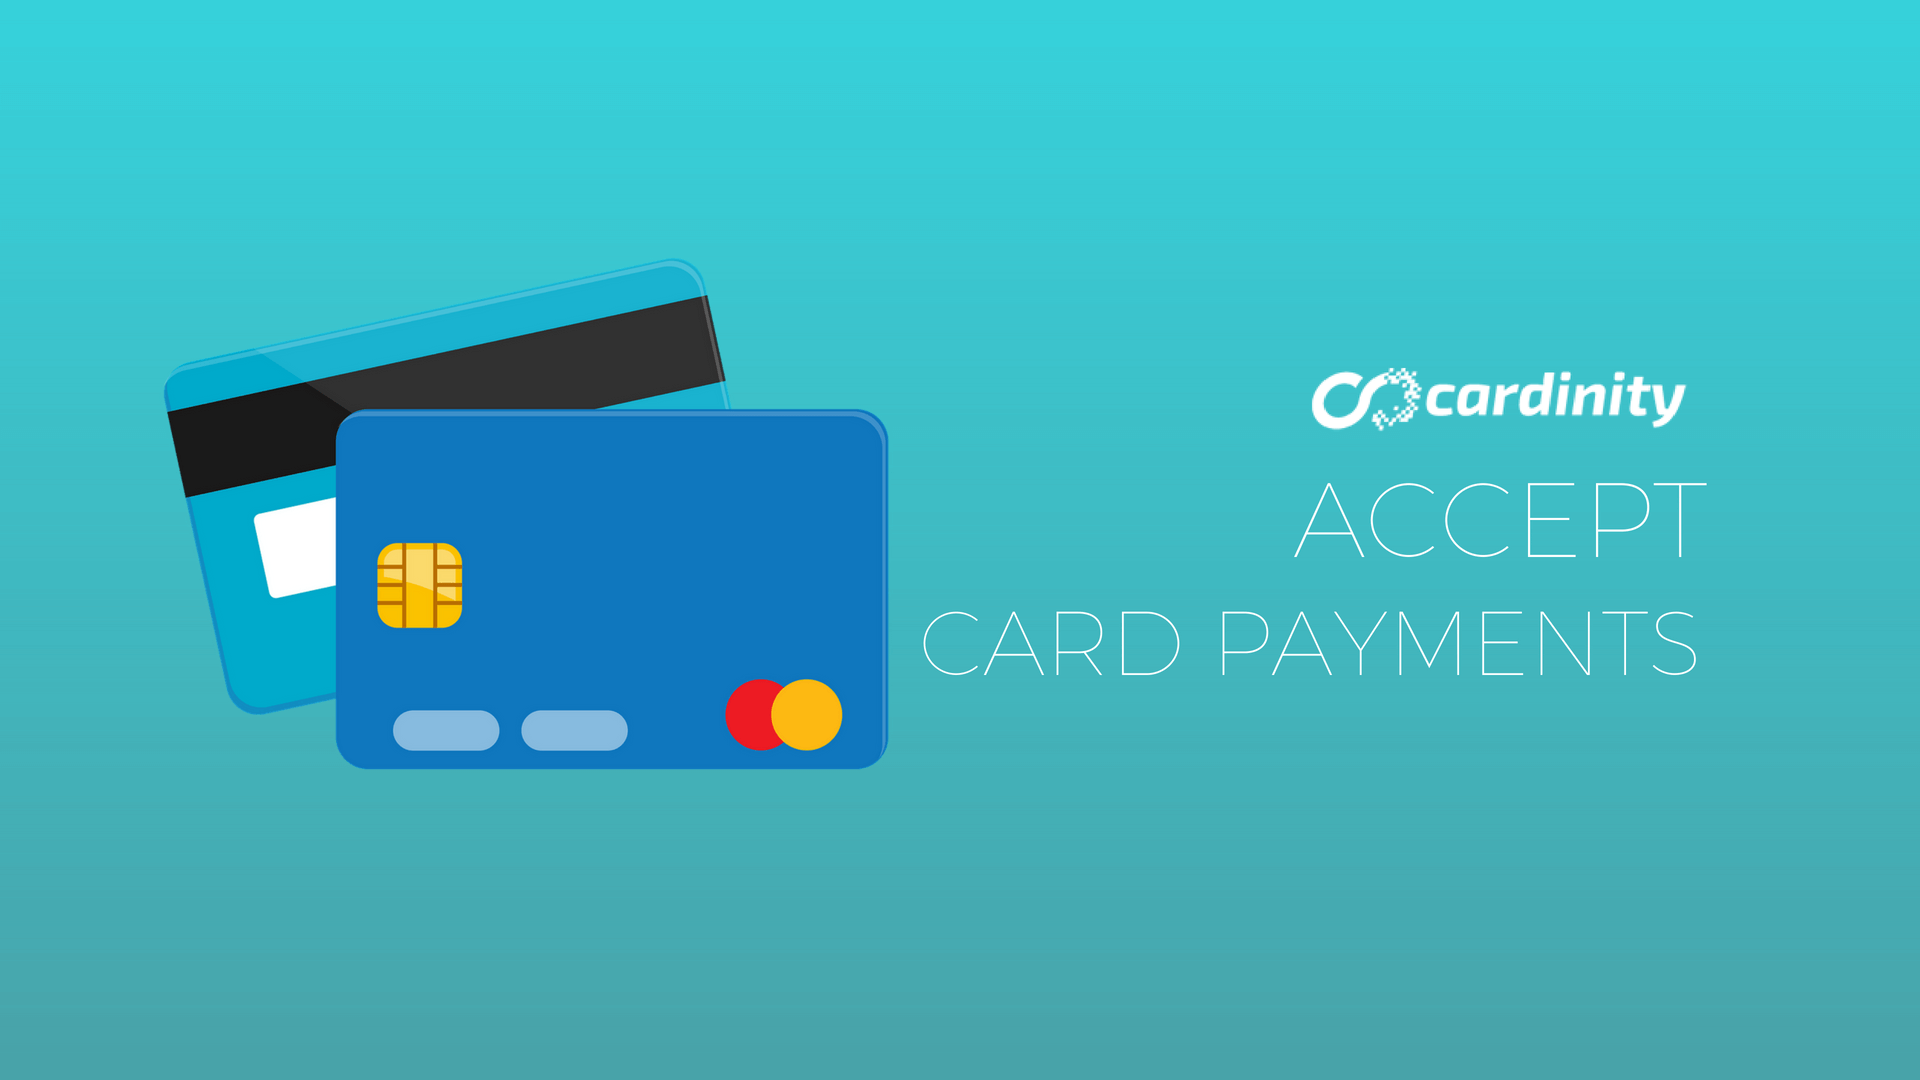 Card payments for e-commerce websites